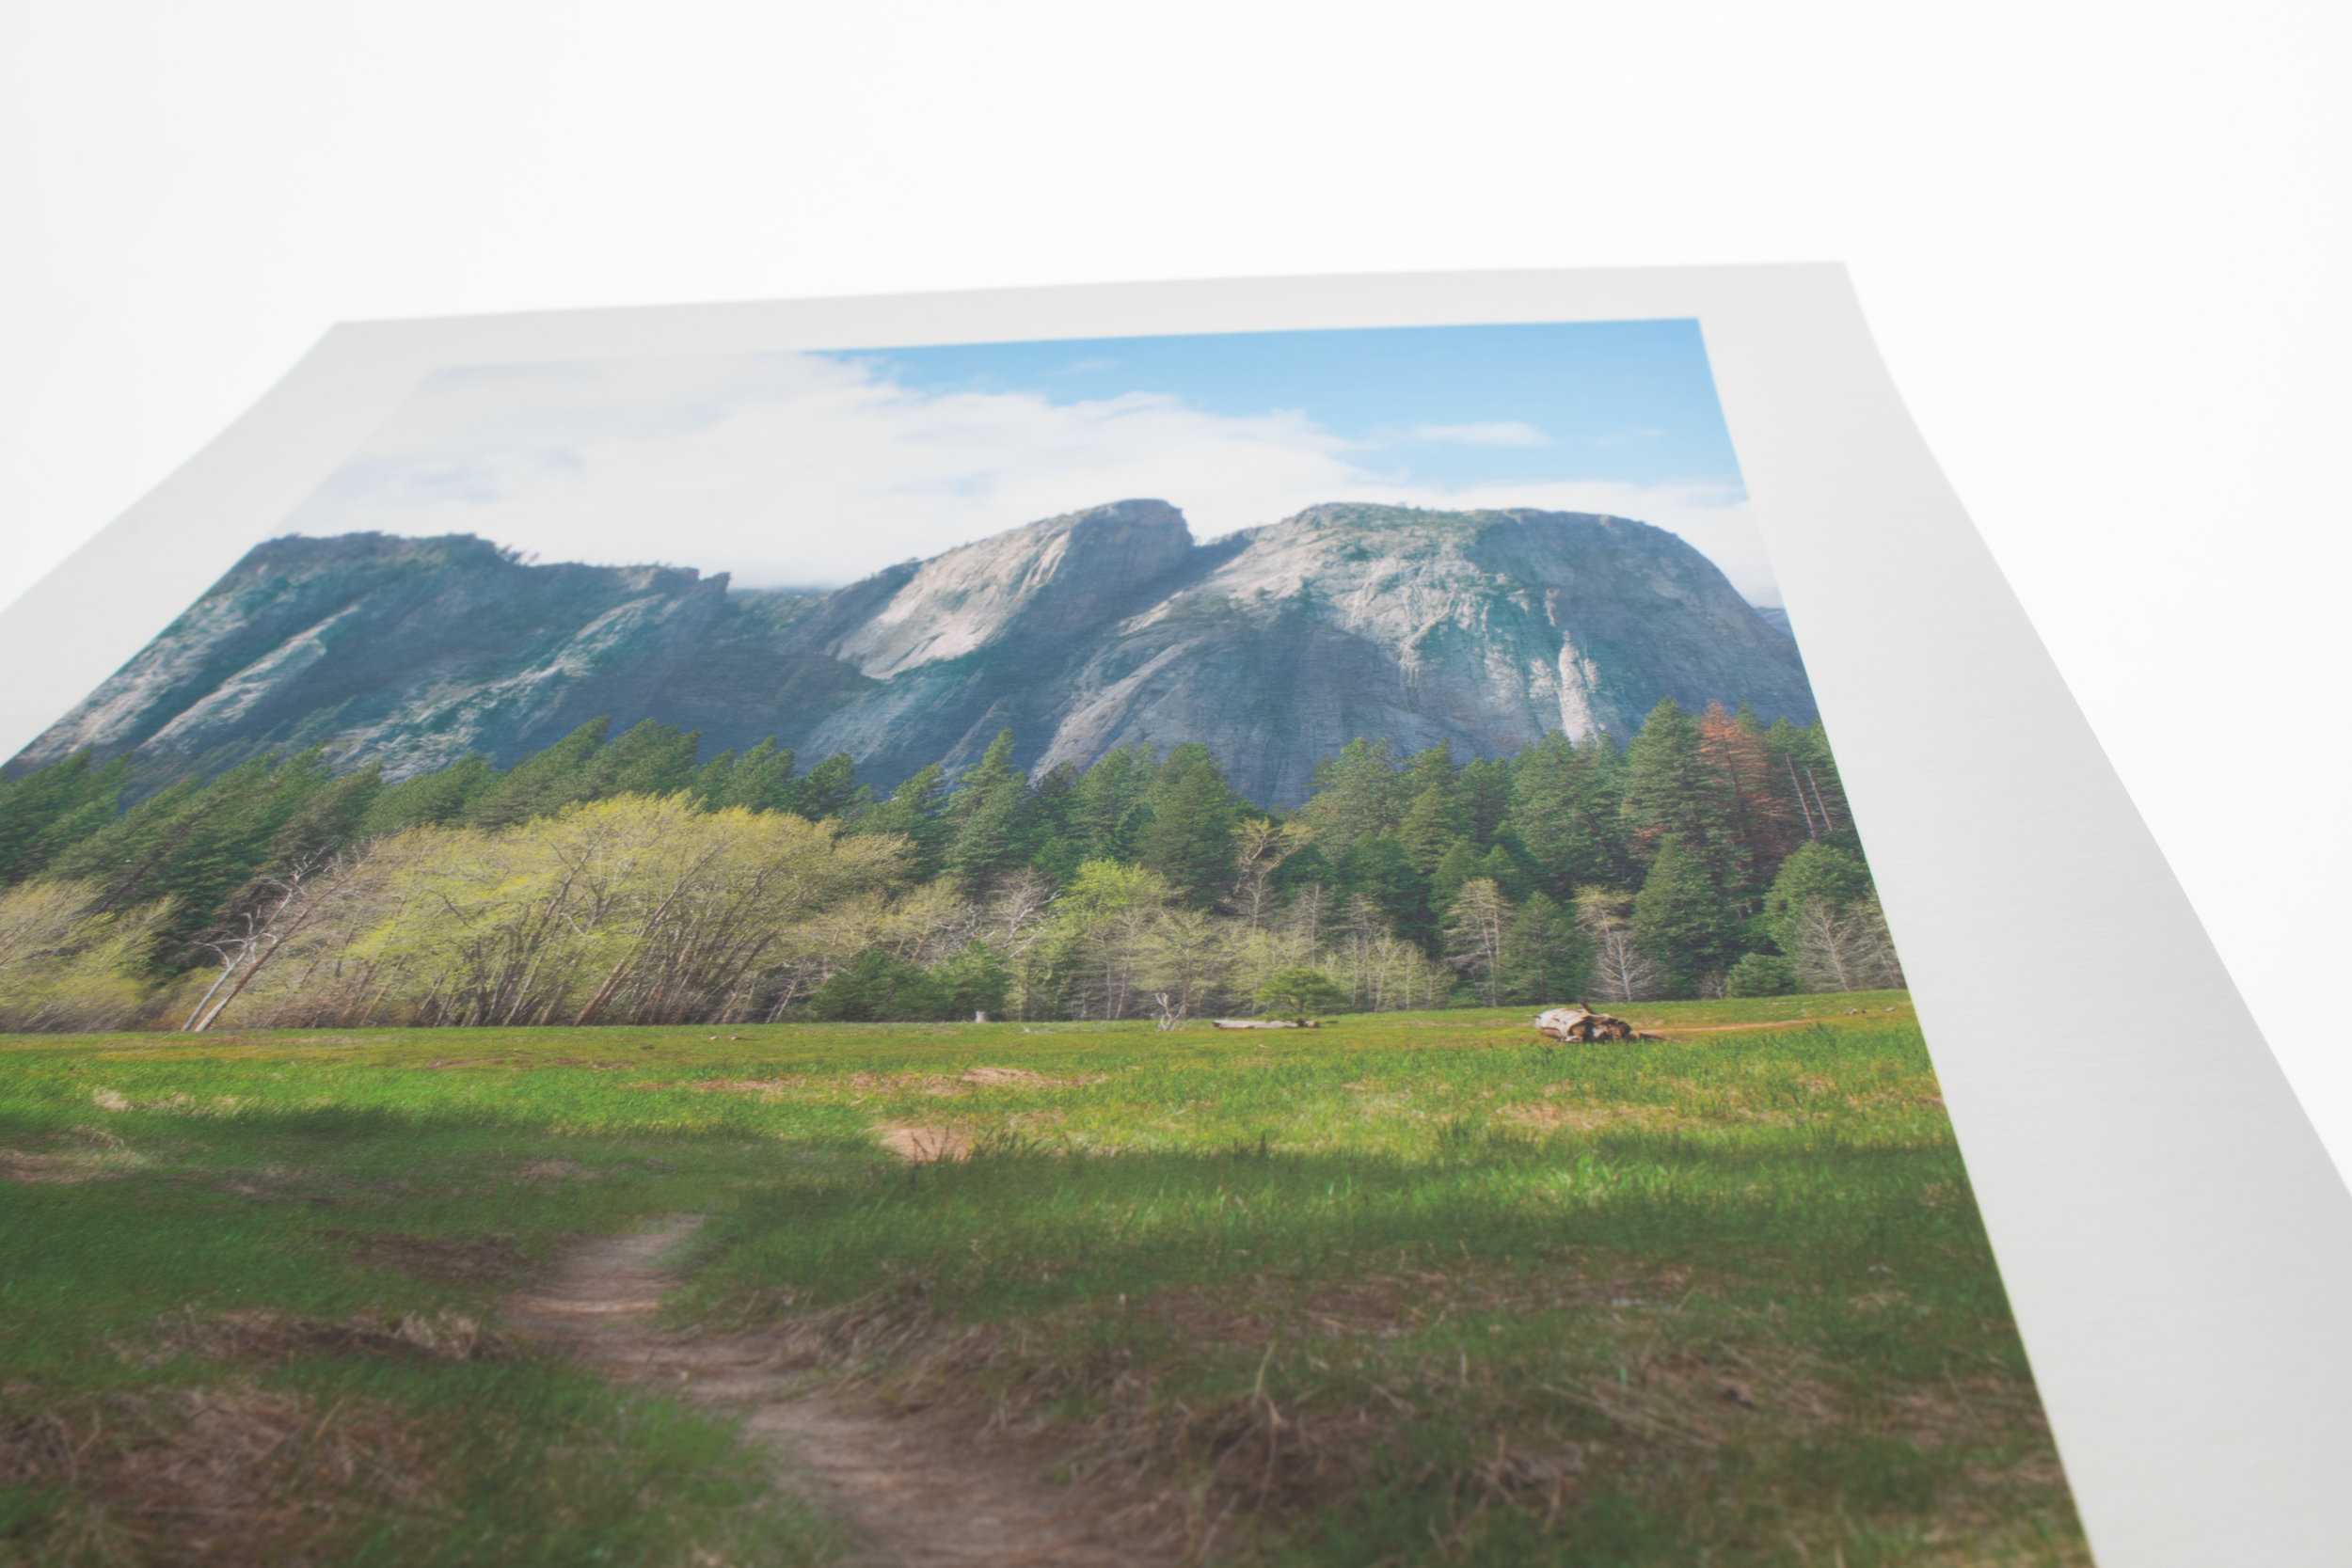 Yosemite Valley Hahnemuhle Fine Art Paper